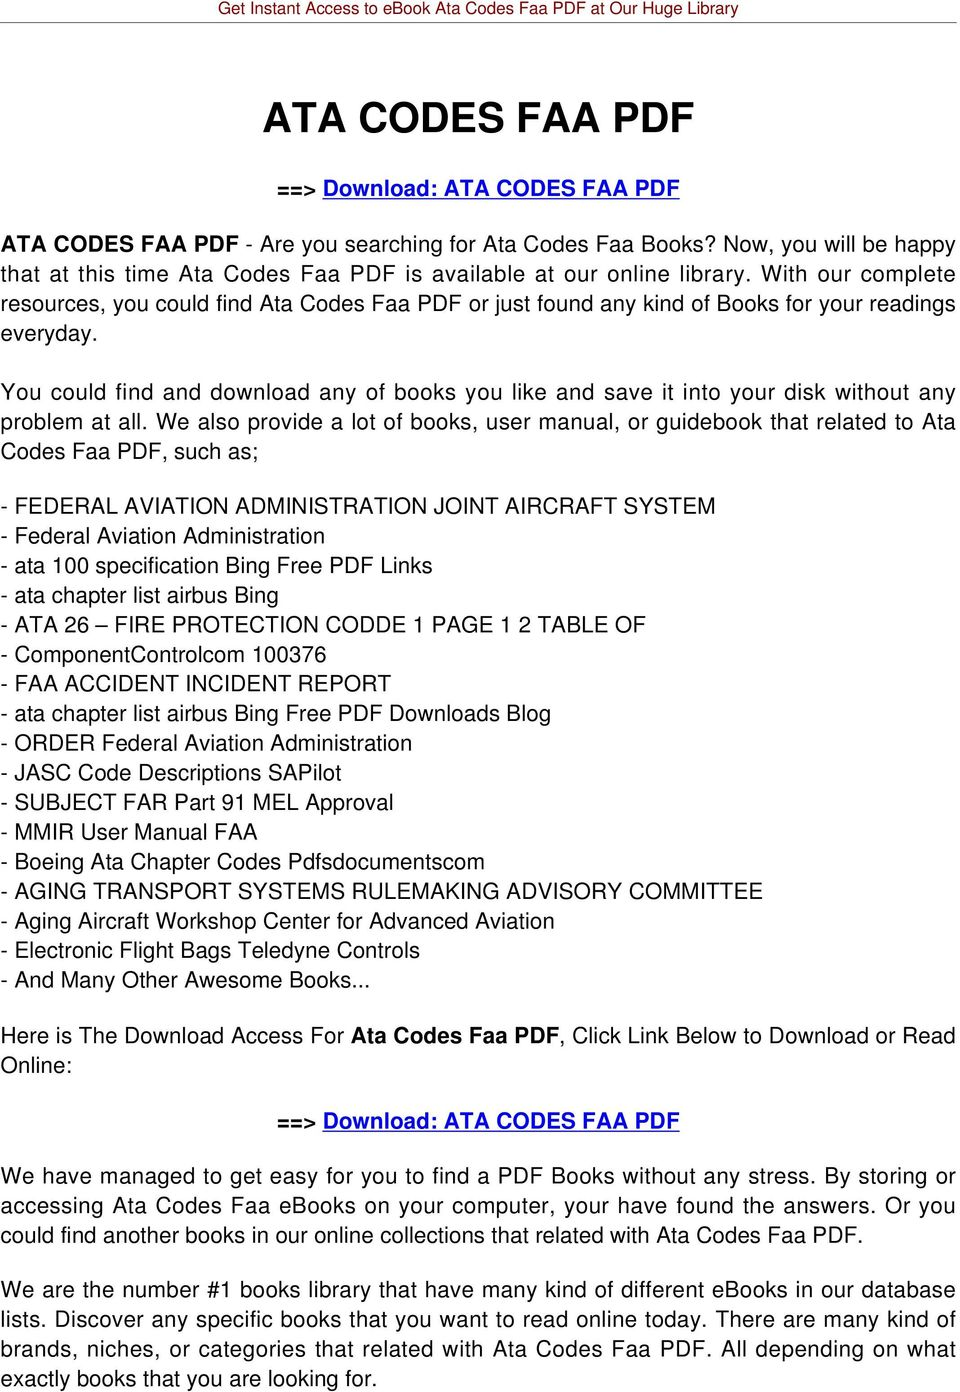 With our complete resources, you could find Ata Codes Faa PDF or just found any kind of Books for your readings everyday.